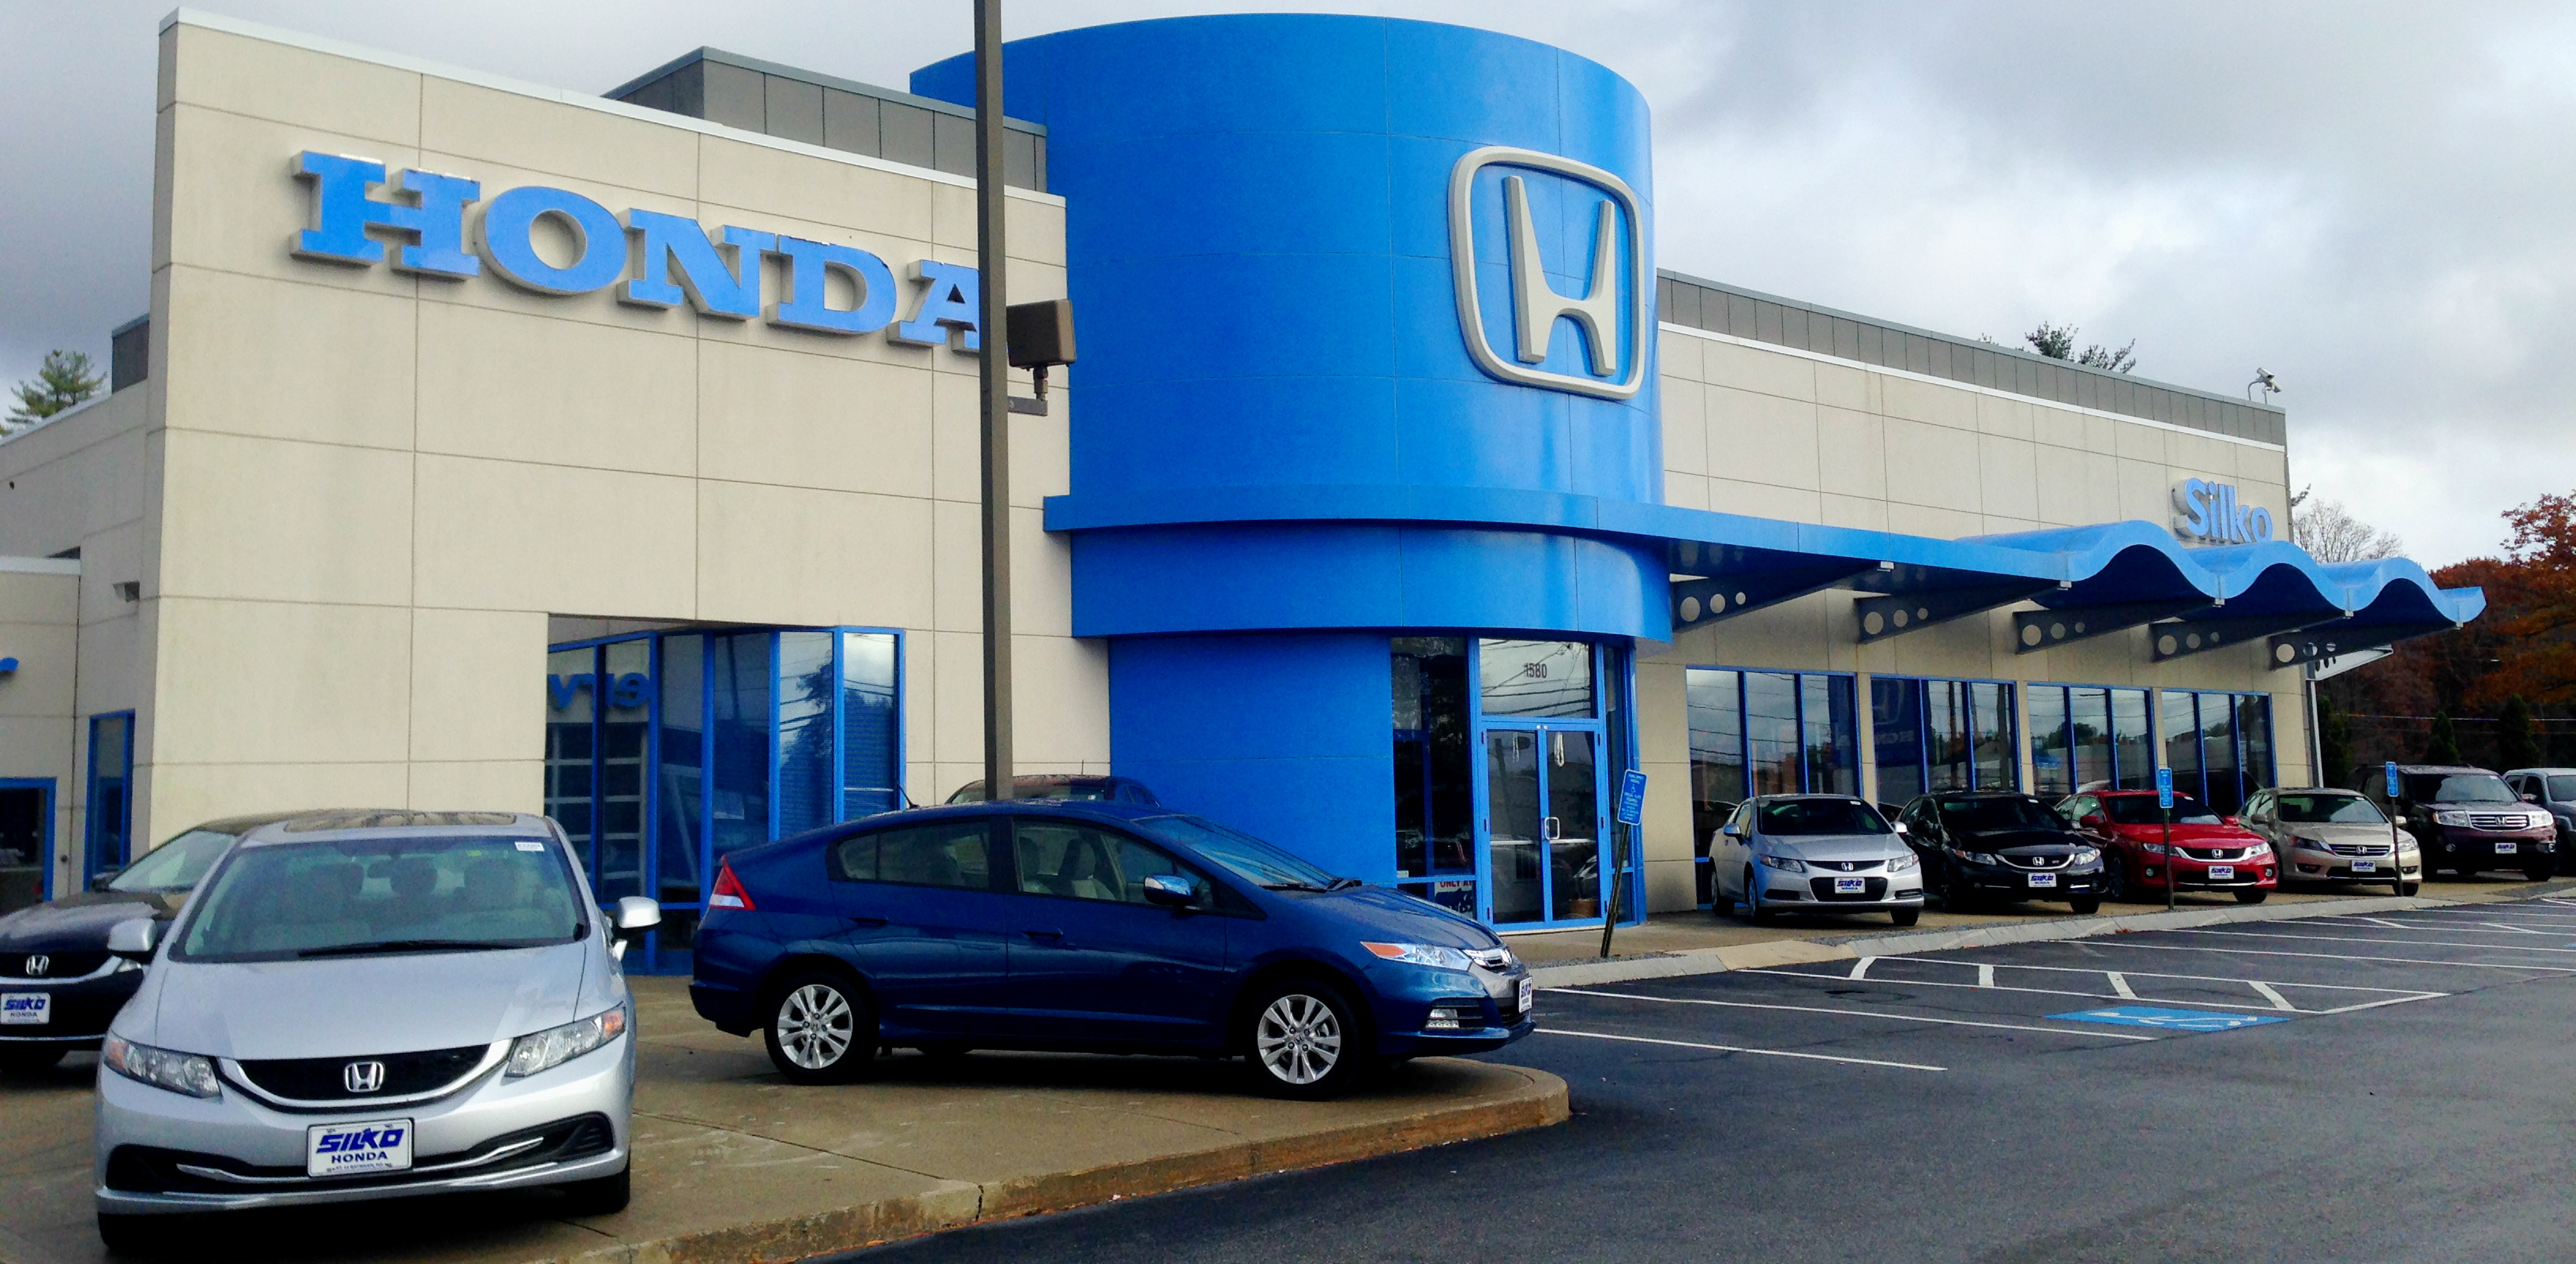 honda and used car dealer brockton taunton silko honda